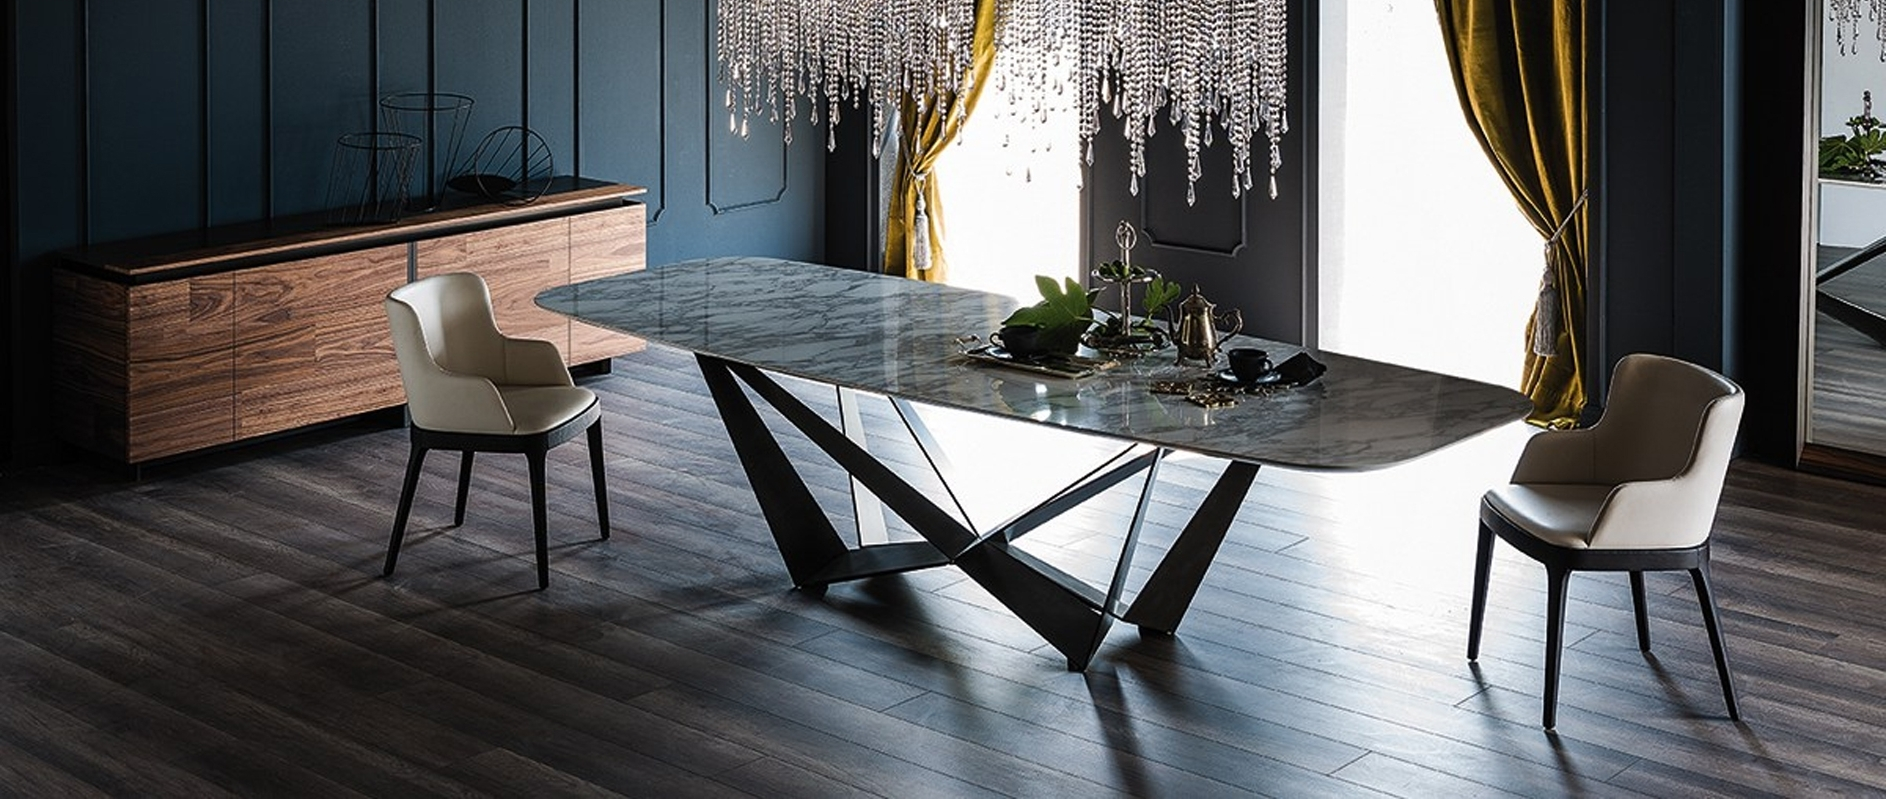 Modern Dining Room Furniture Pertaining To Widely Used Modern Dining Room Furniture – Modern Dining Tables, Dining Chairs (View 16 of 25)